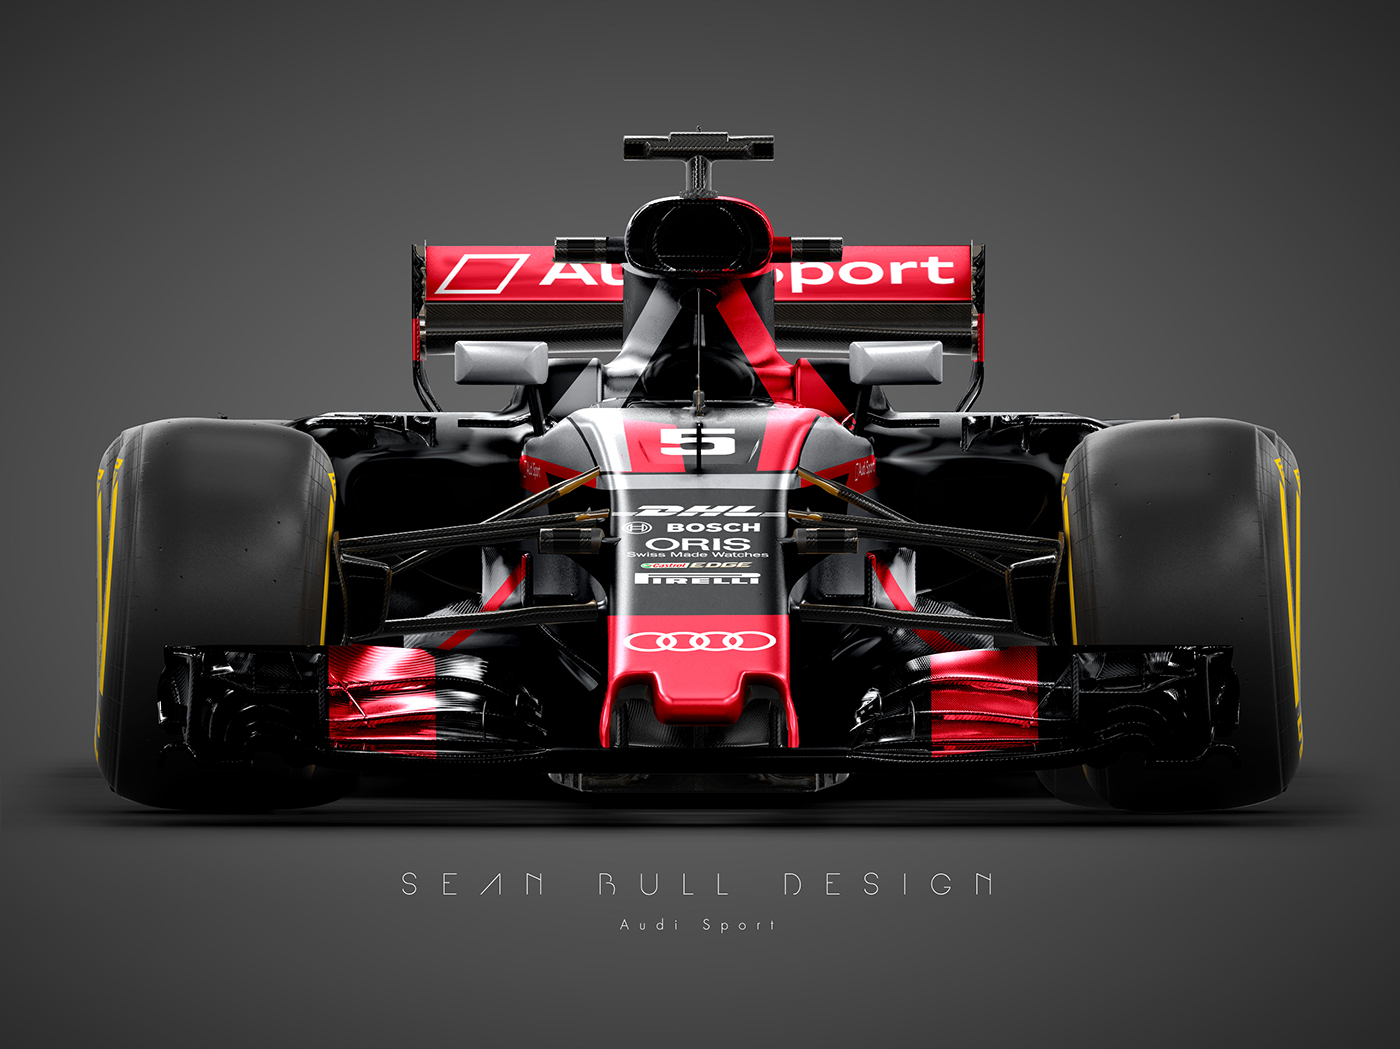 Audi Sport F1 Concept Livery On Behance